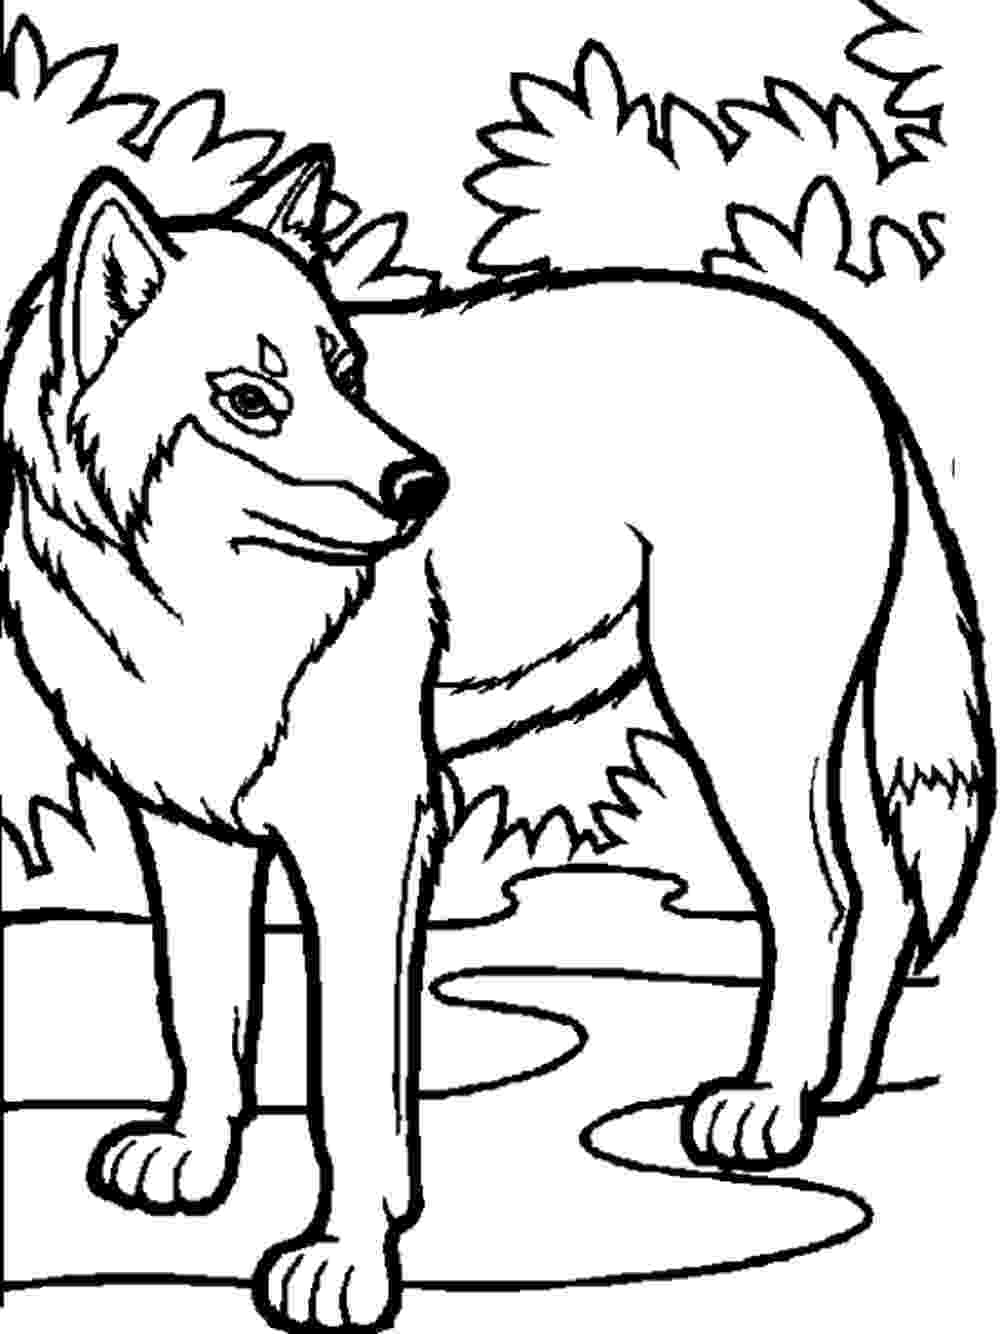 wolf colouring pages free printable wolf coloring pages for kids wolf colouring pages 1 1